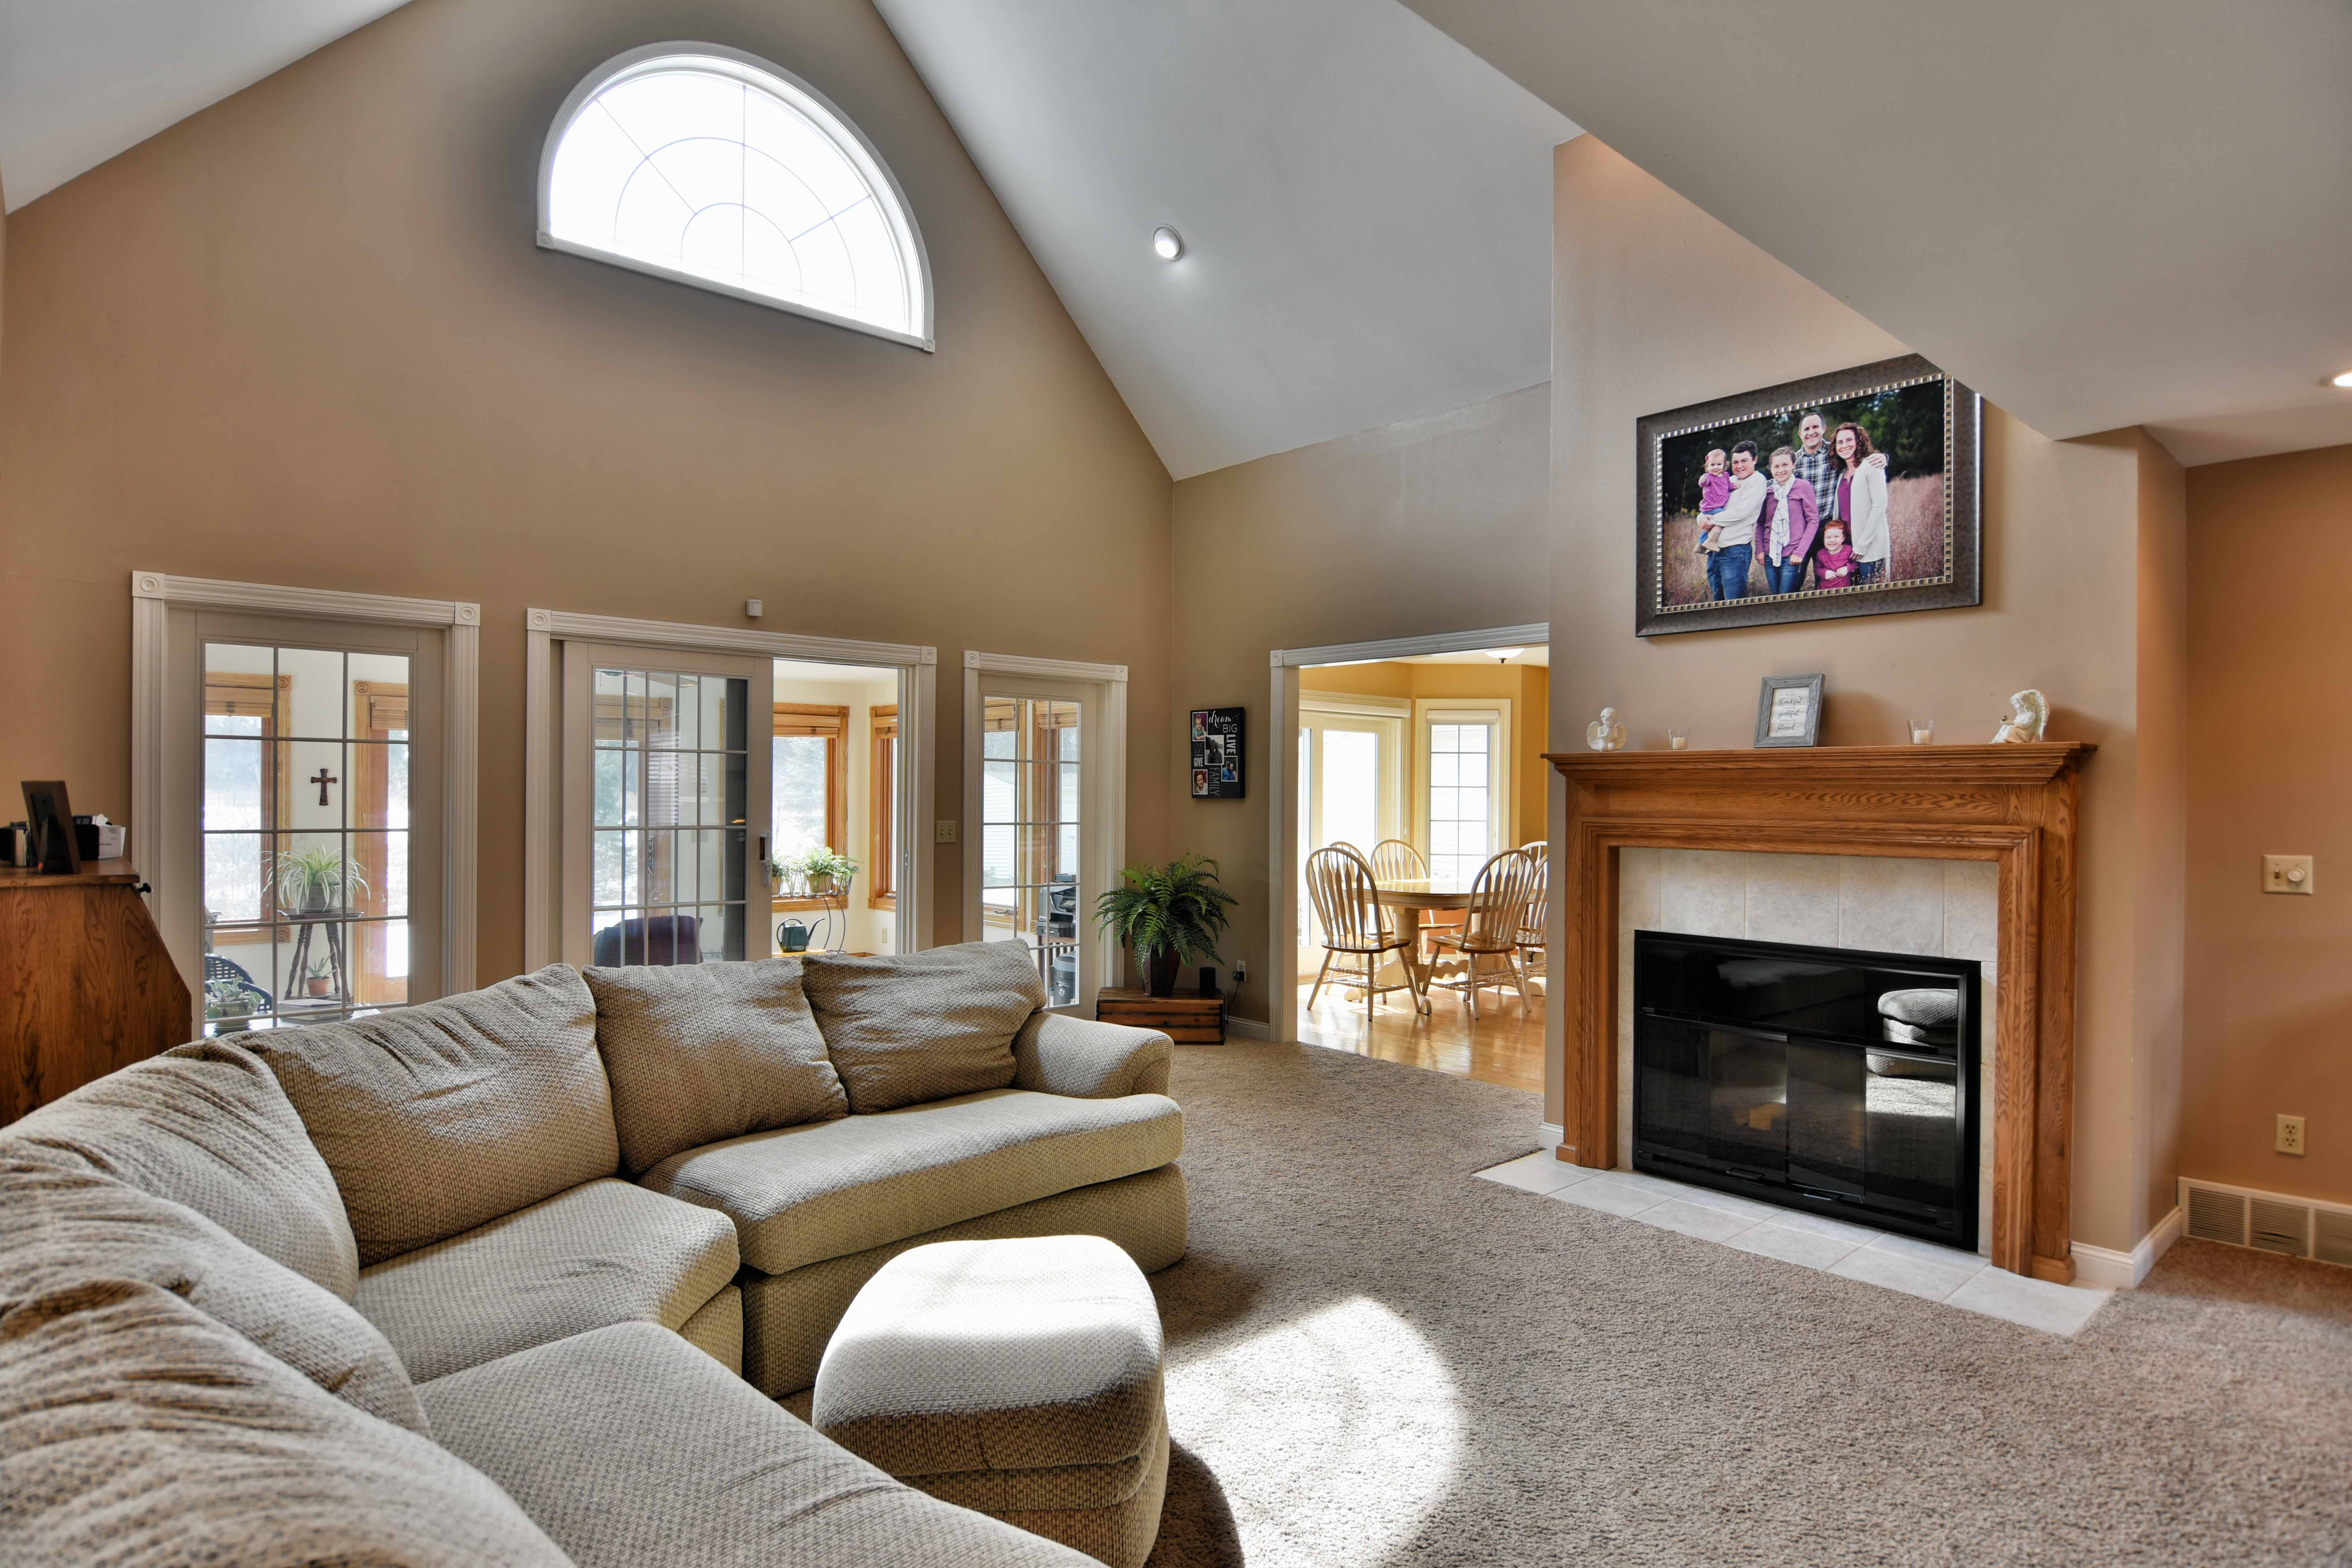 rice lake home living room, real estate for sale